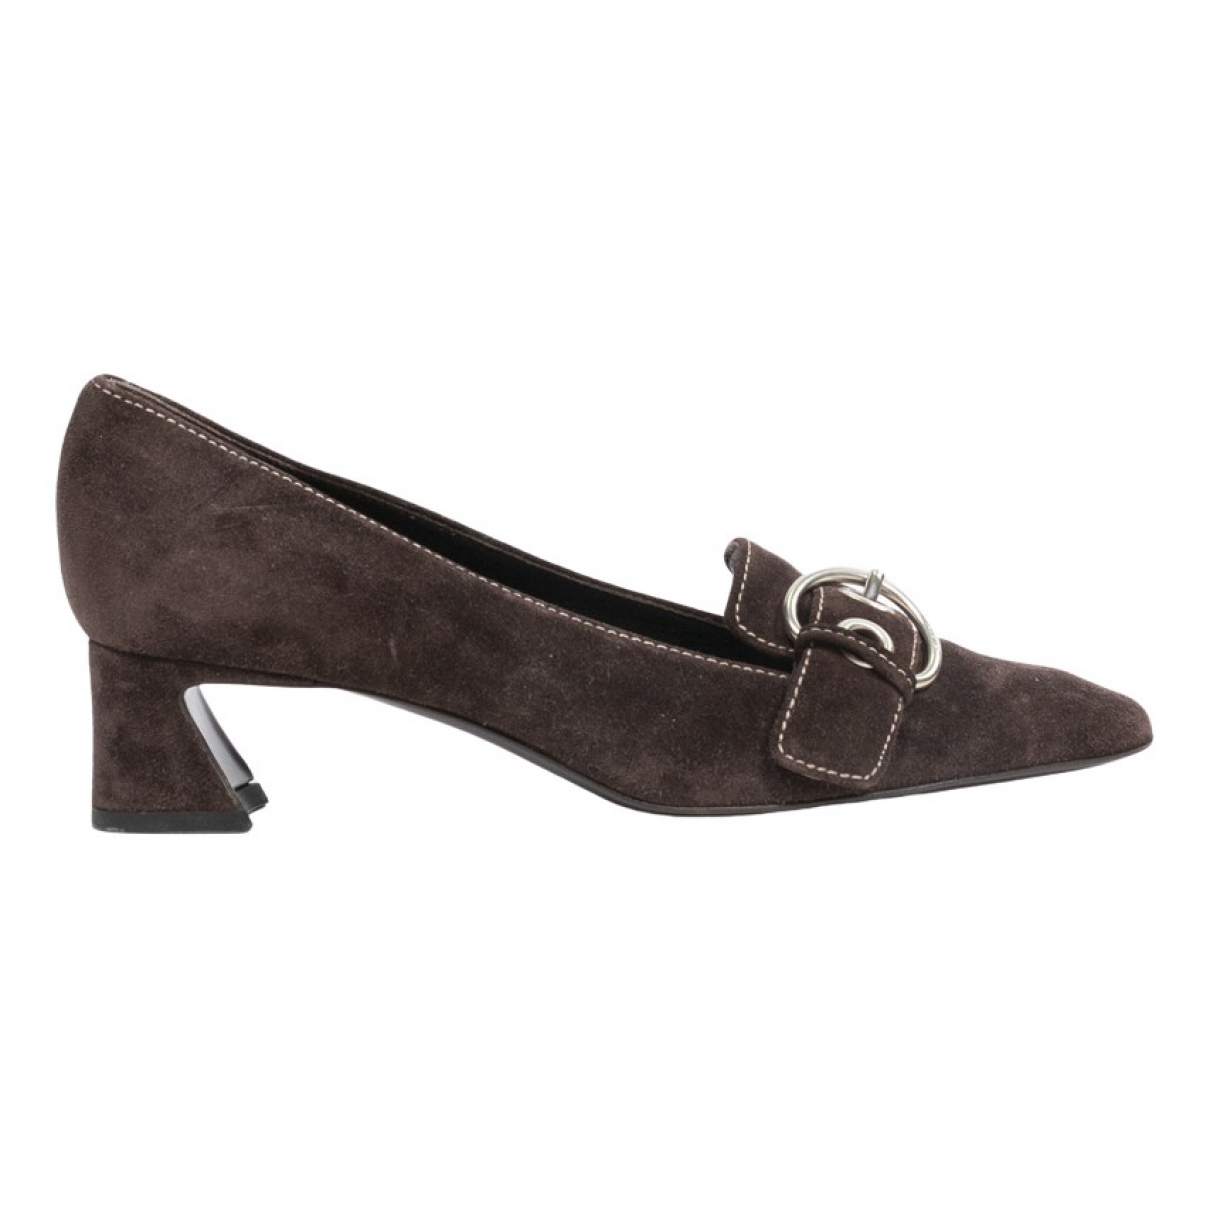 Prada \N Brown Suede Heels for Women 36.5 EU